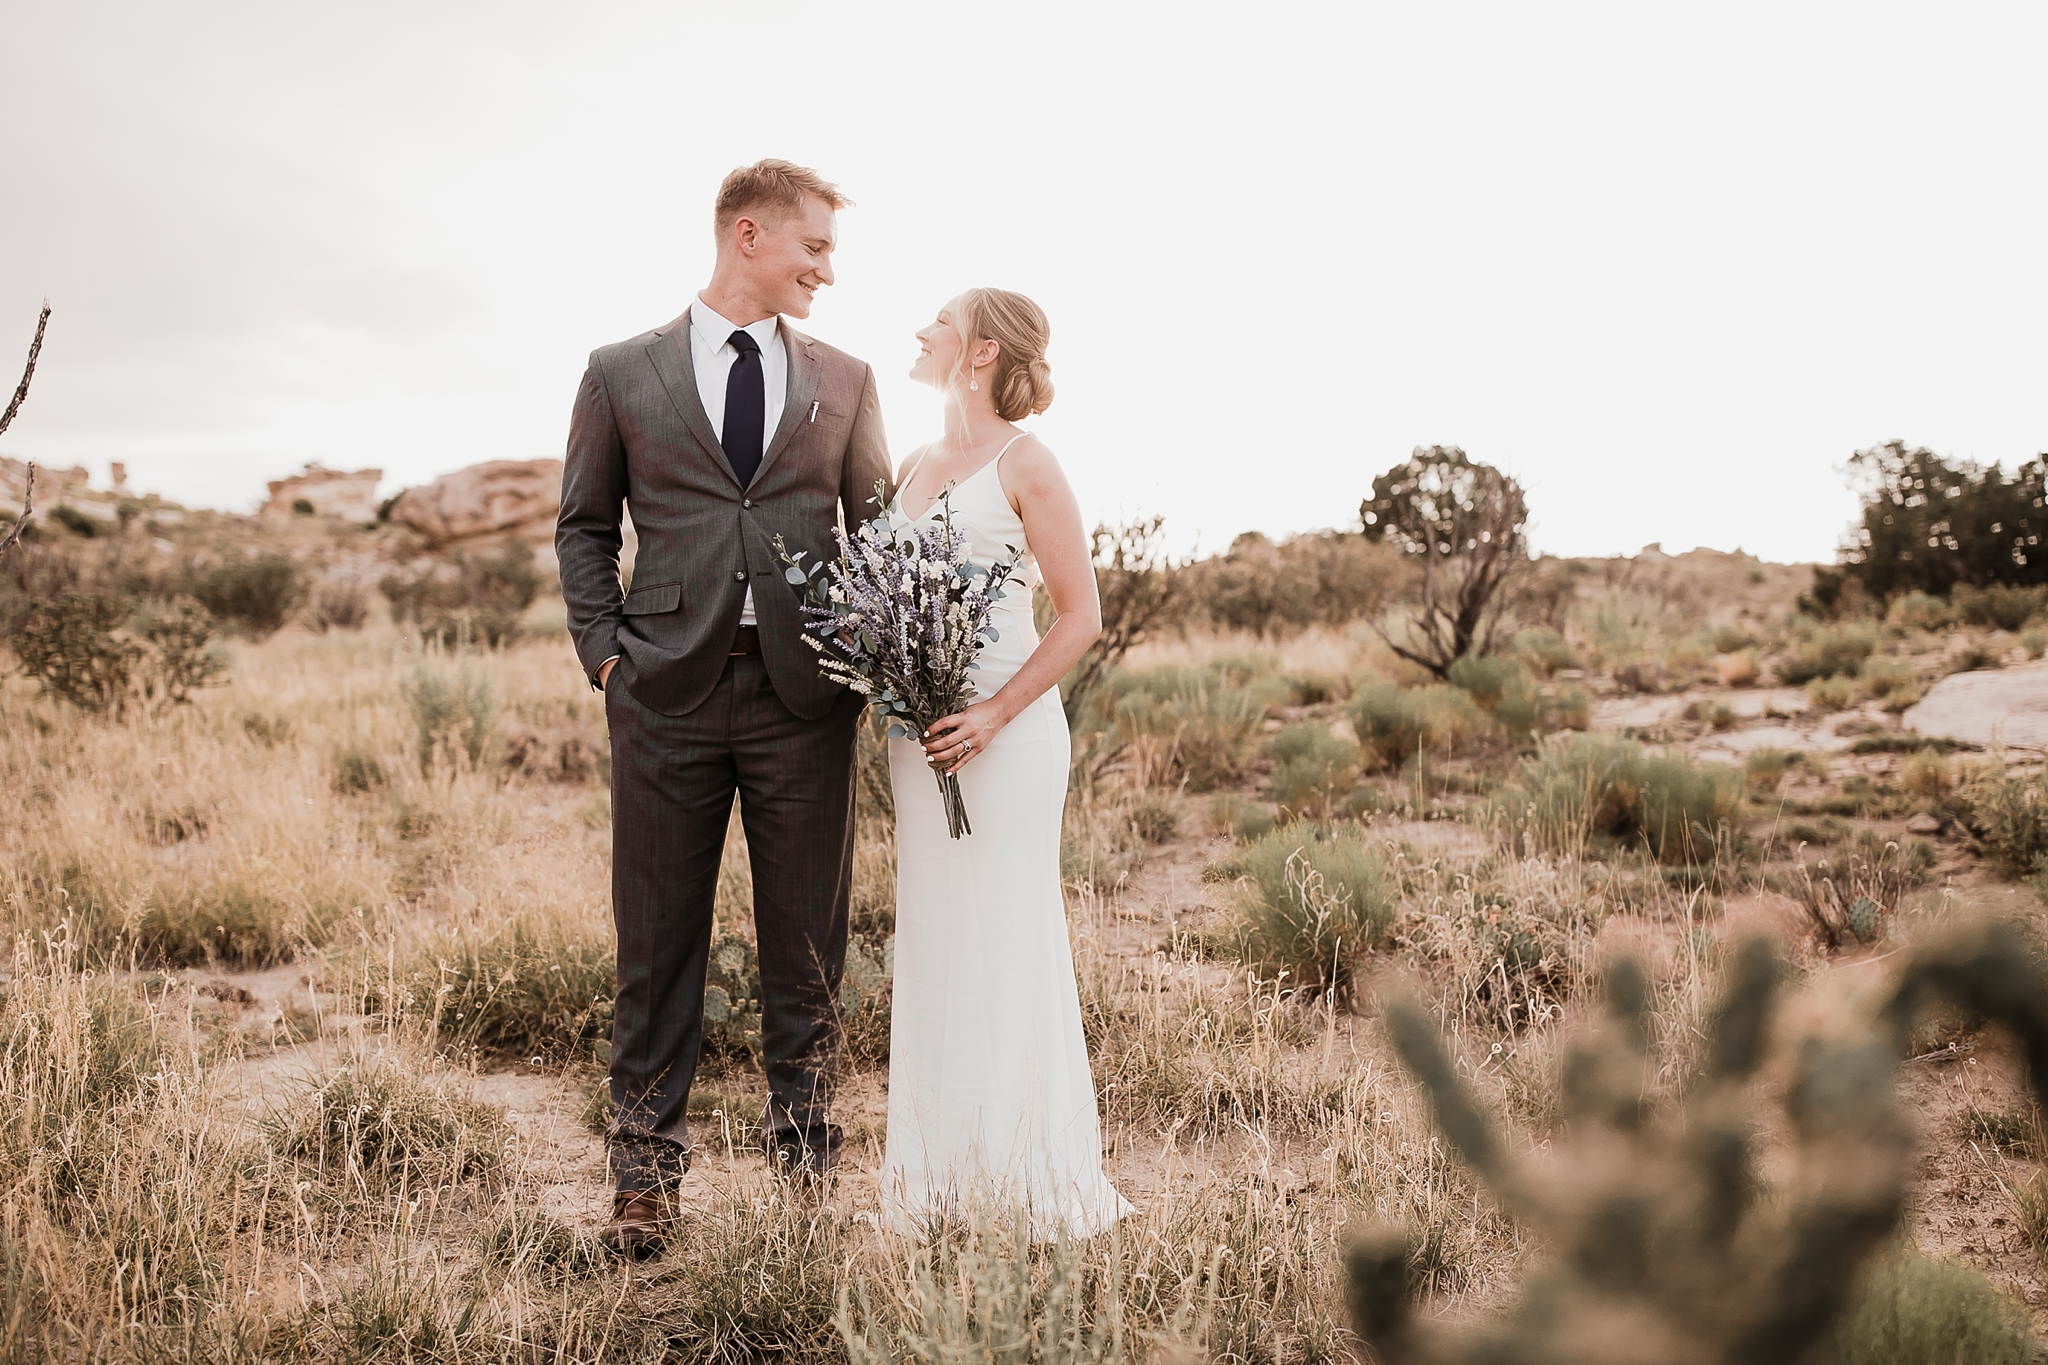 Alicia+lucia+photography+-+albuquerque+wedding+photographer+-+santa+fe+wedding+photography+-+new+mexico+wedding+photographer+-+new+mexico+wedding+-+new+mexico+elopement+-+elopment+-+mountain+elopement_0001.jpg